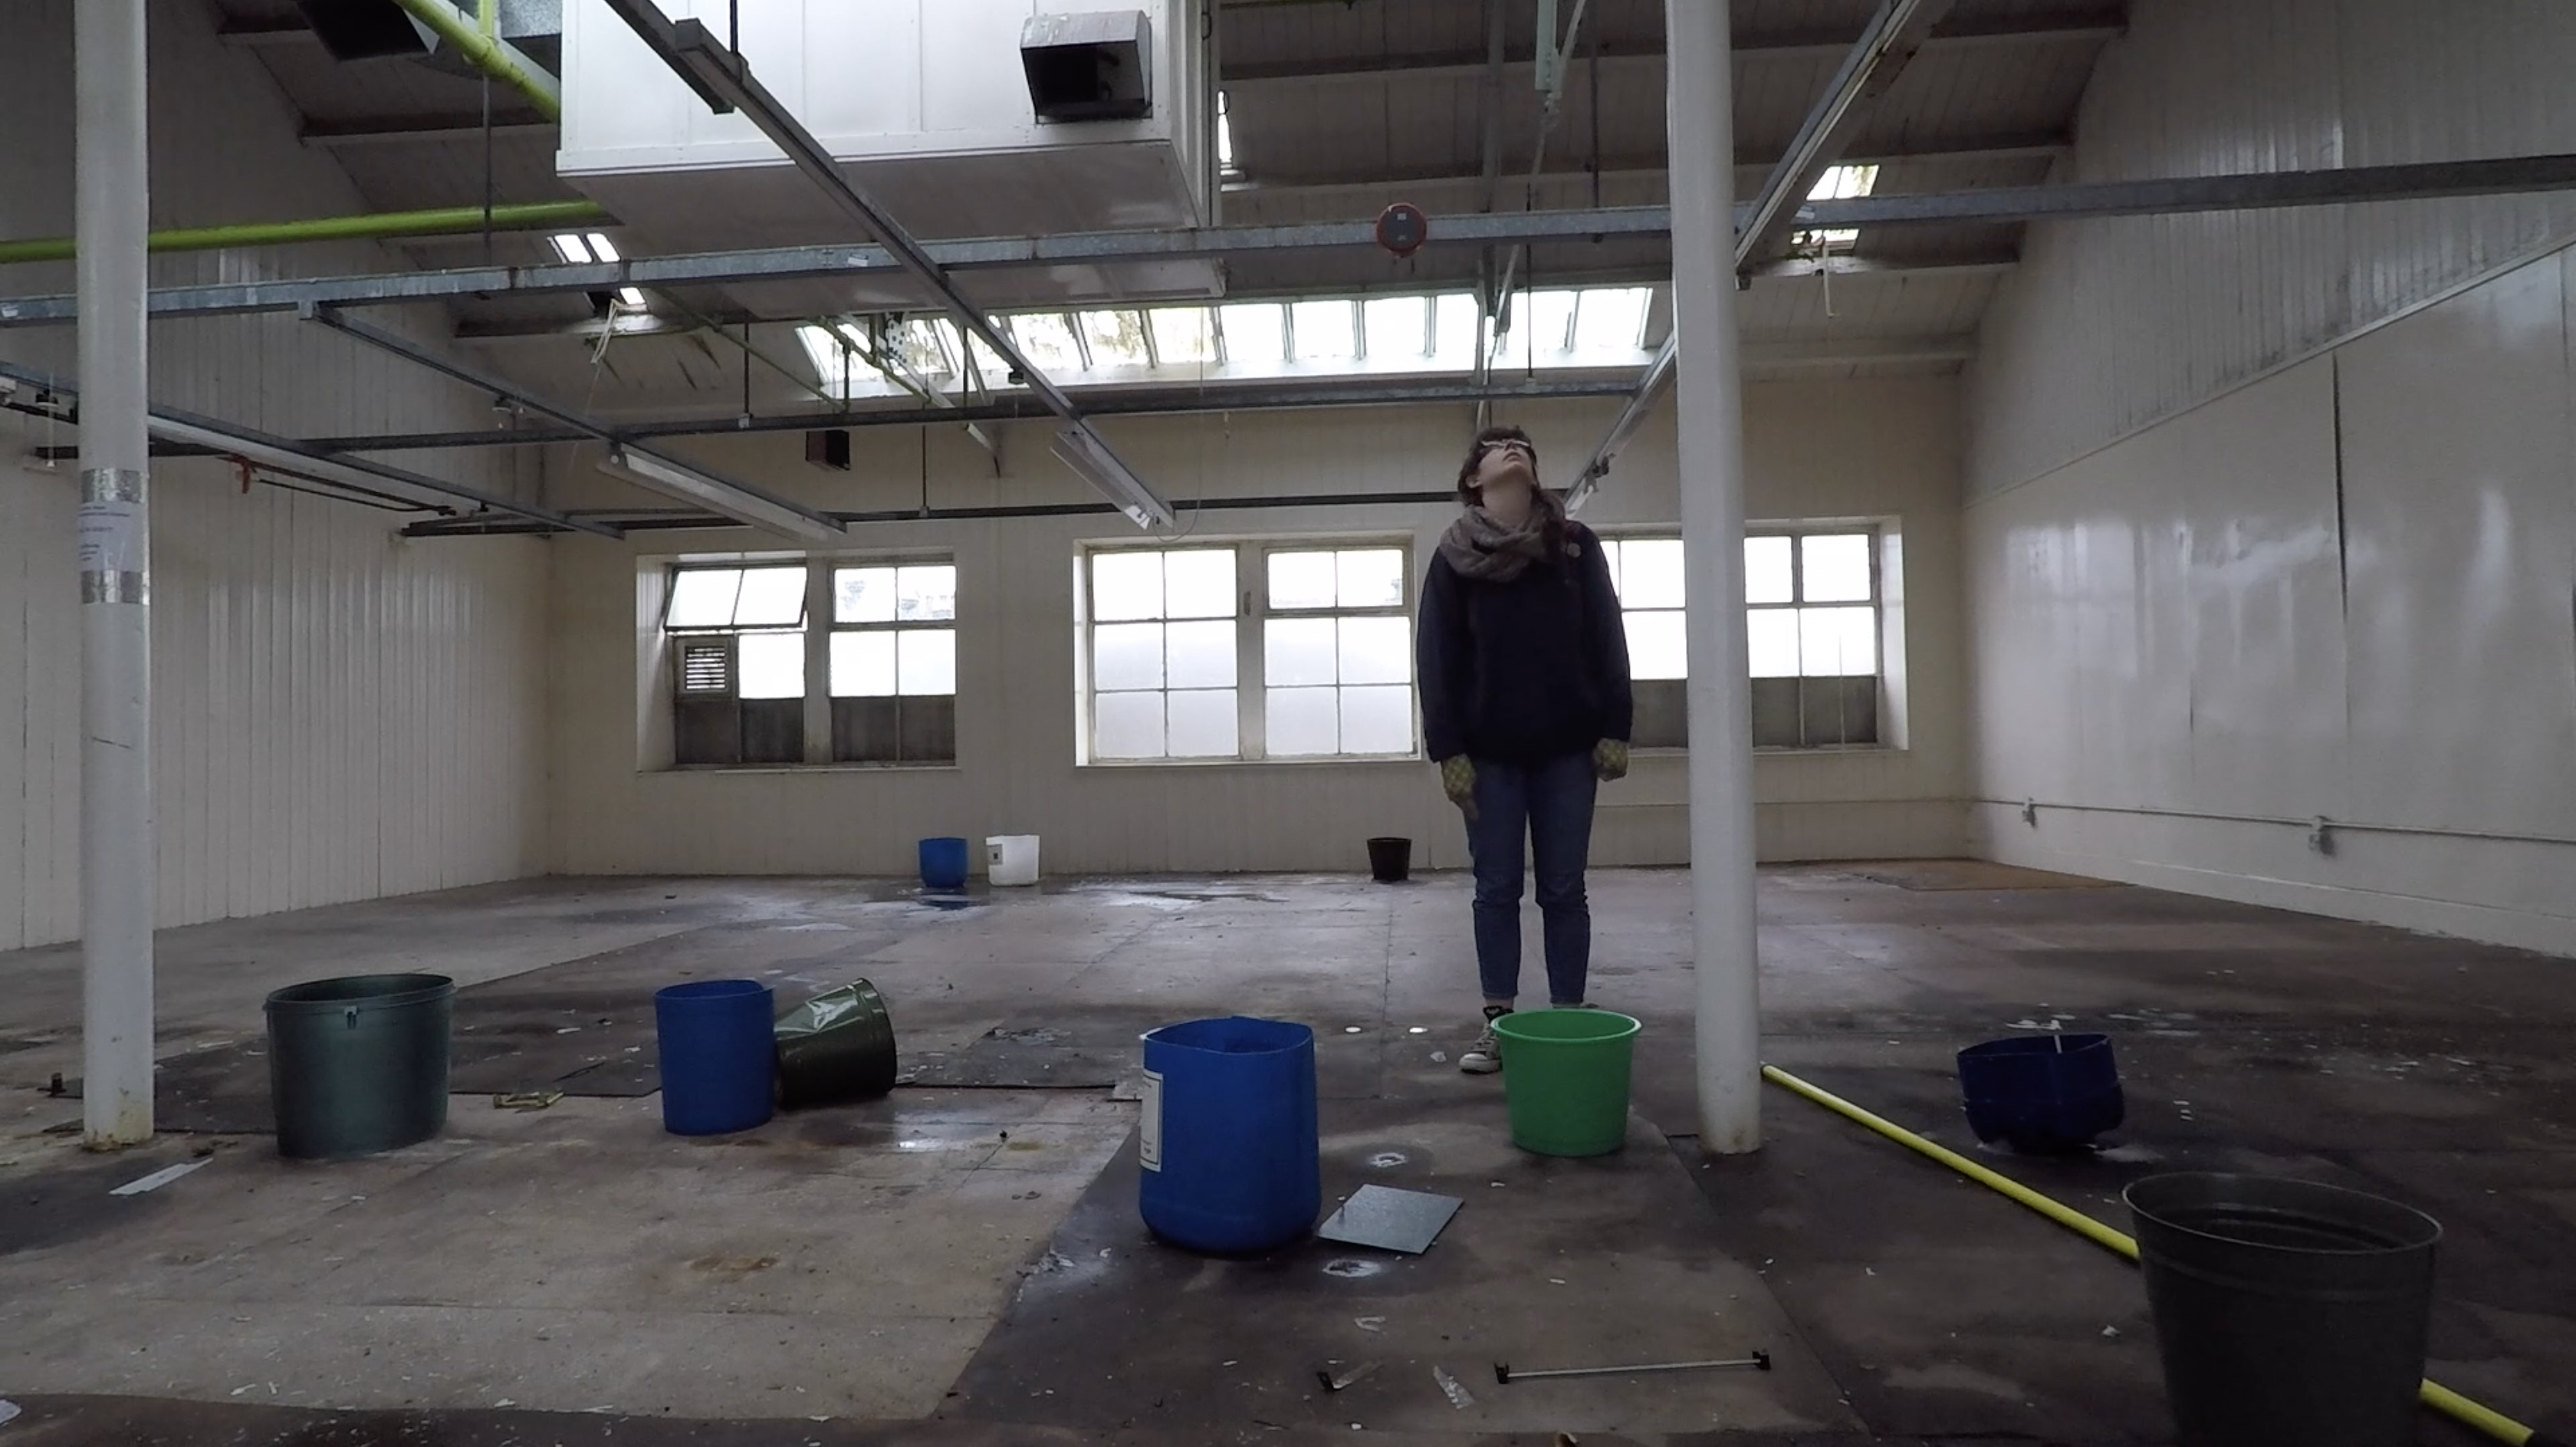 Woman stares at the ceiling in a room with buckets on the floor